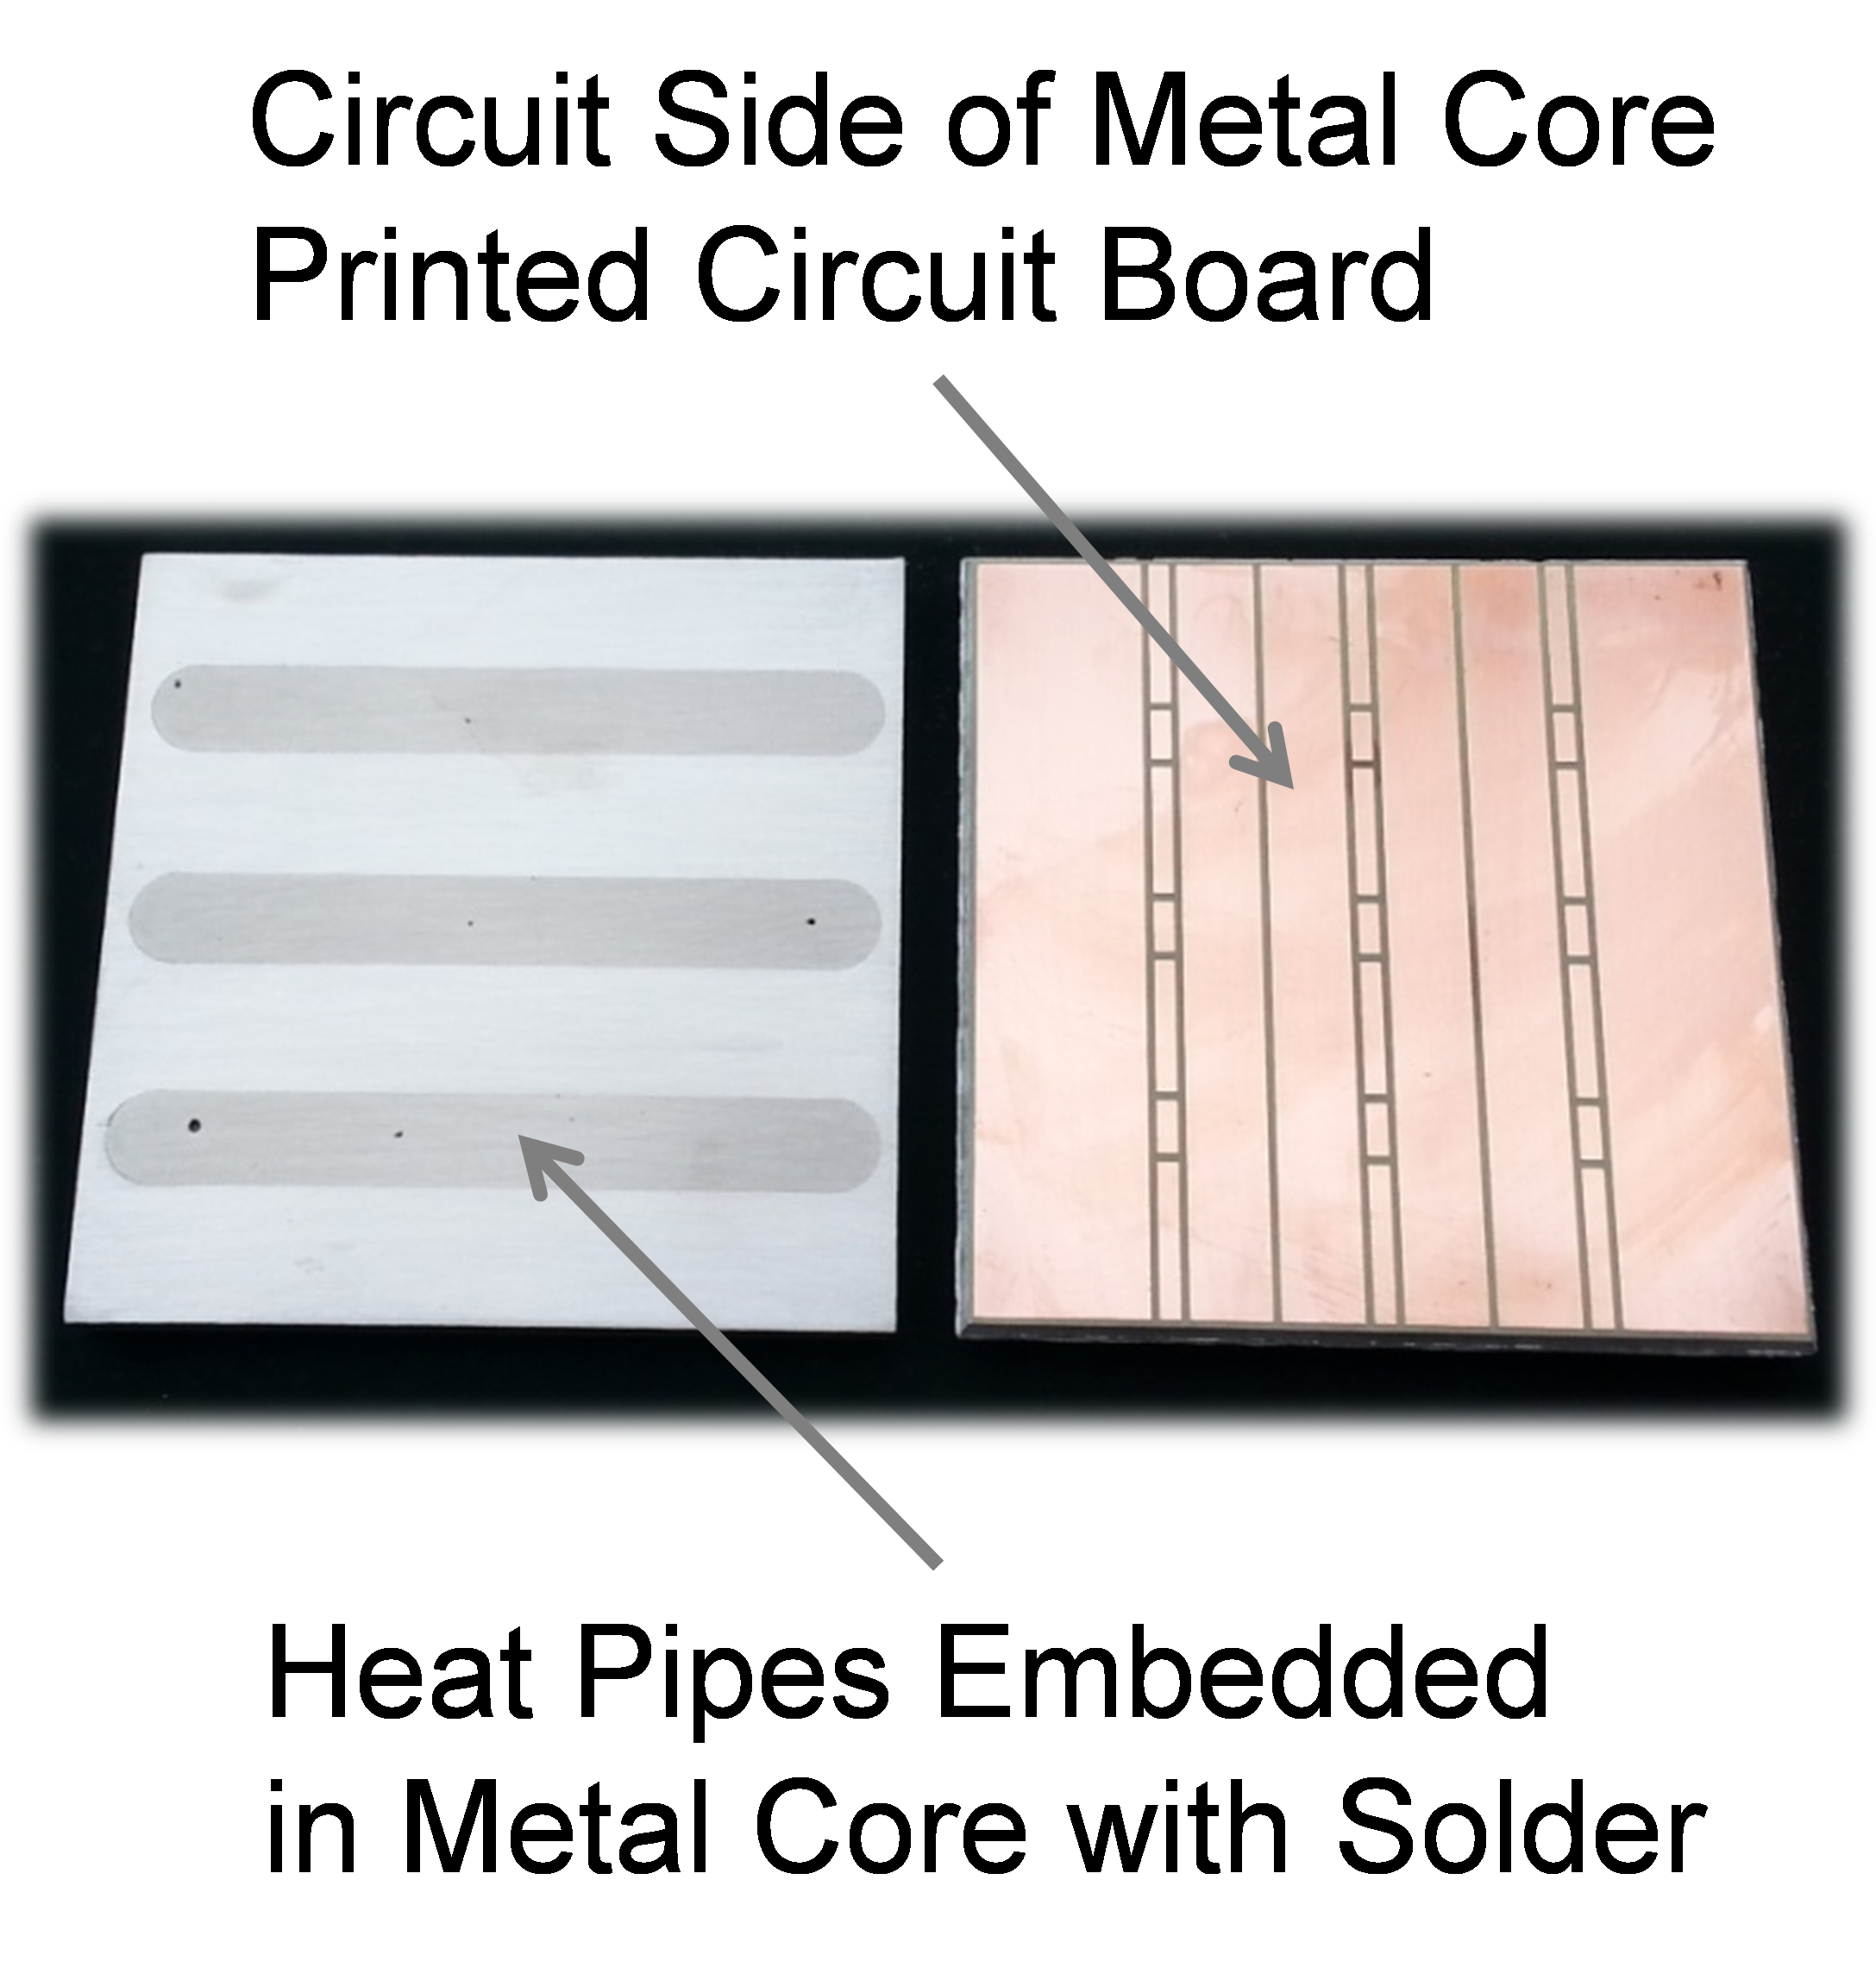 Led Thermal Management Improved Spreading On Printed Circuit Boards In A Parallel Photograph Of Metal Core Board With Heat Pipes Soldered Into The